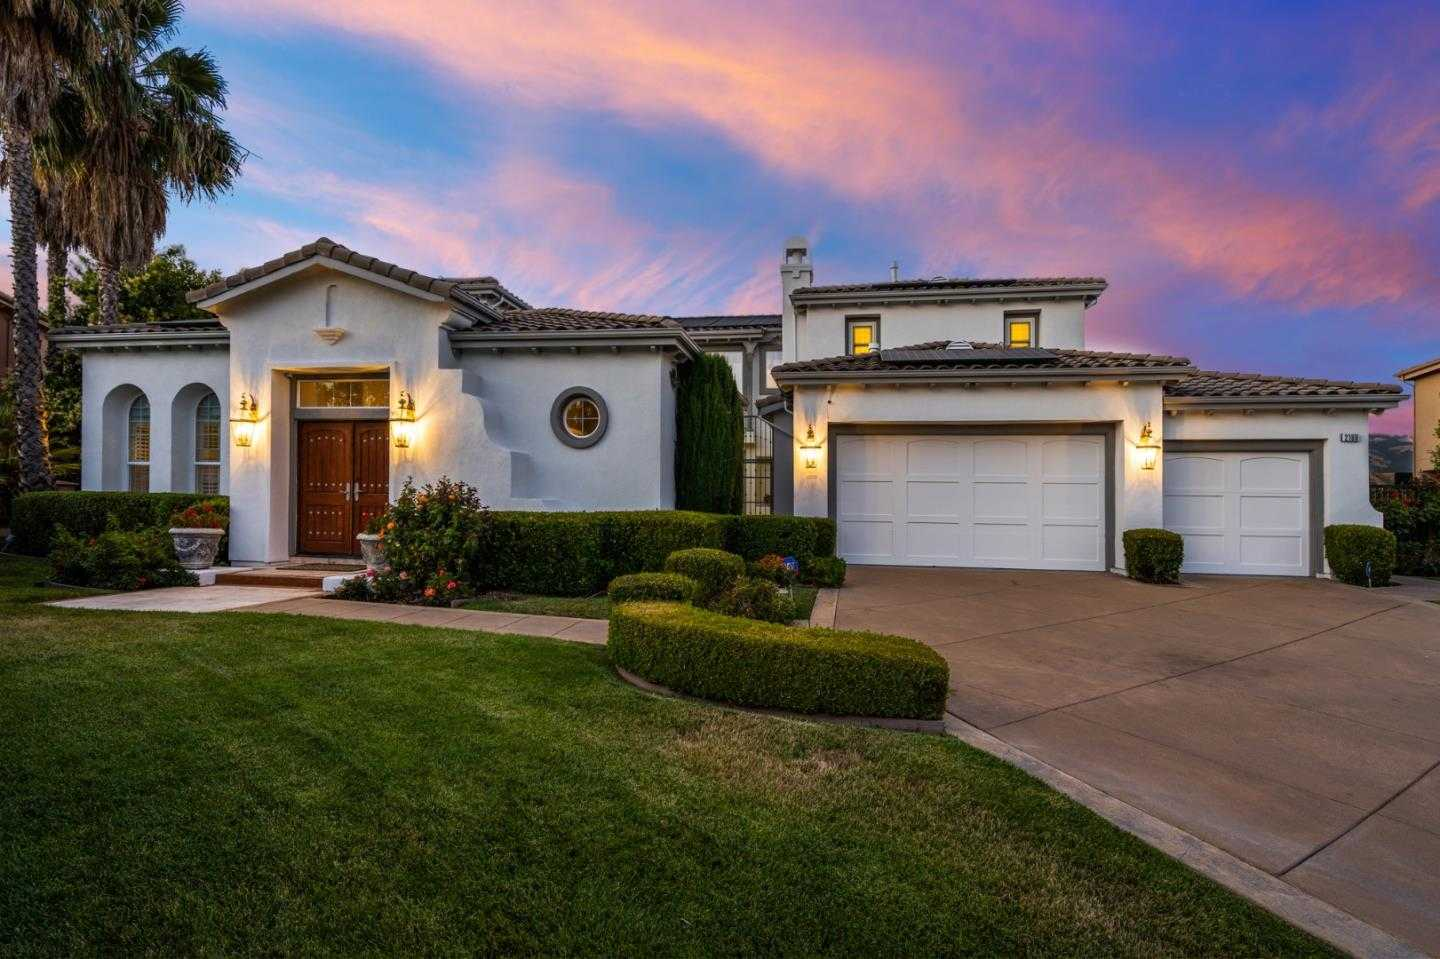 $2,298,000 - 5Br/4Ba -  for Sale in San Jose